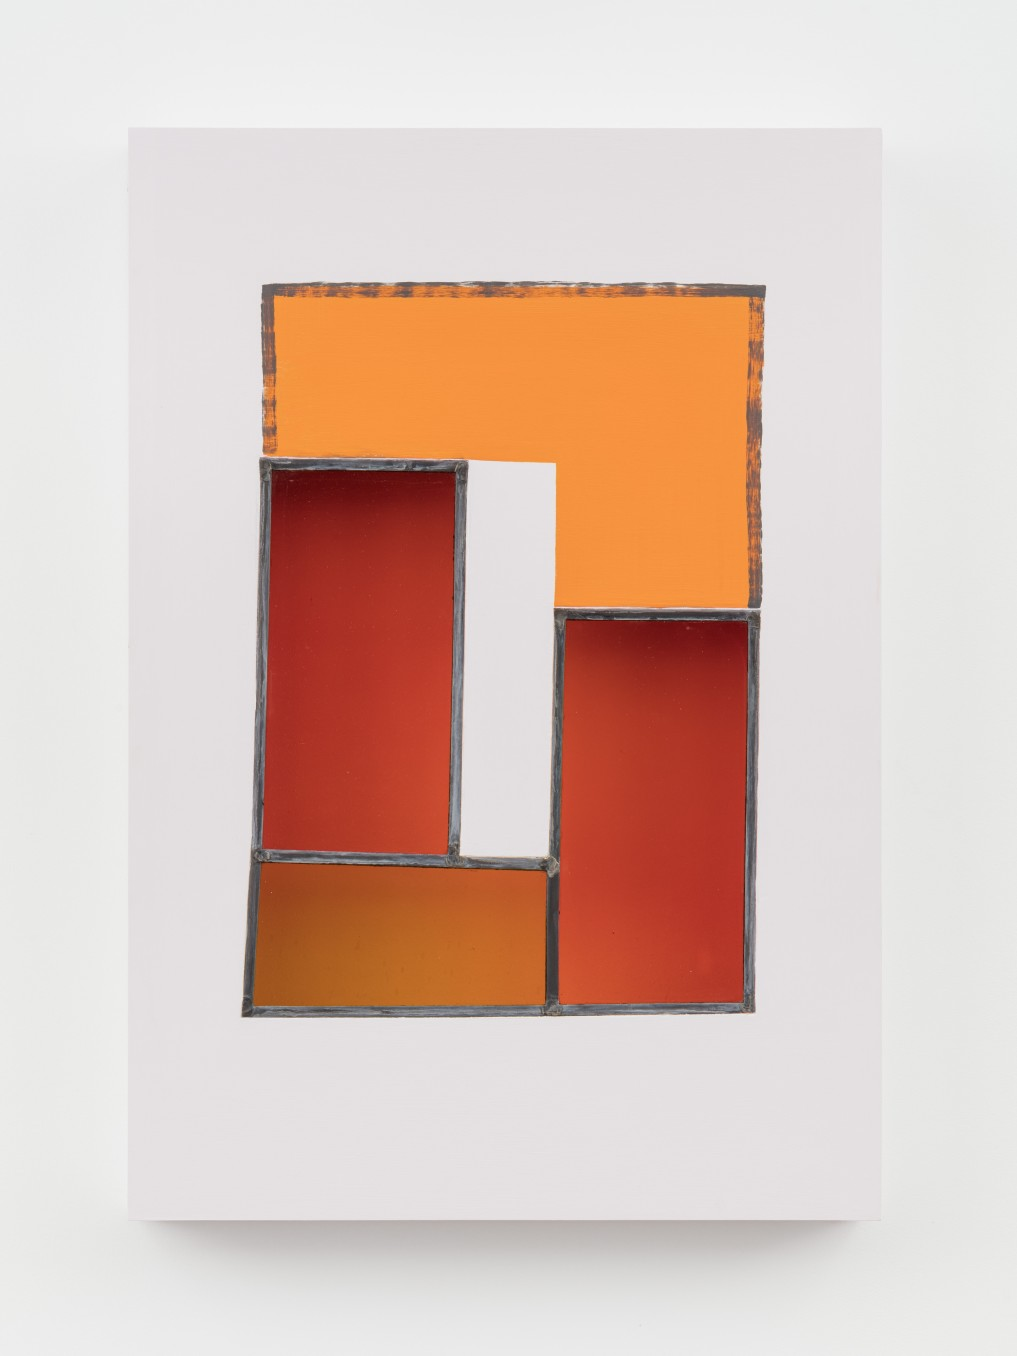 Jessica Warboys HOUR I, 2019 Acrylic, antique glass, lead came, plywood 87 x 59.7 x 8.9 cm 34 1/4 x...